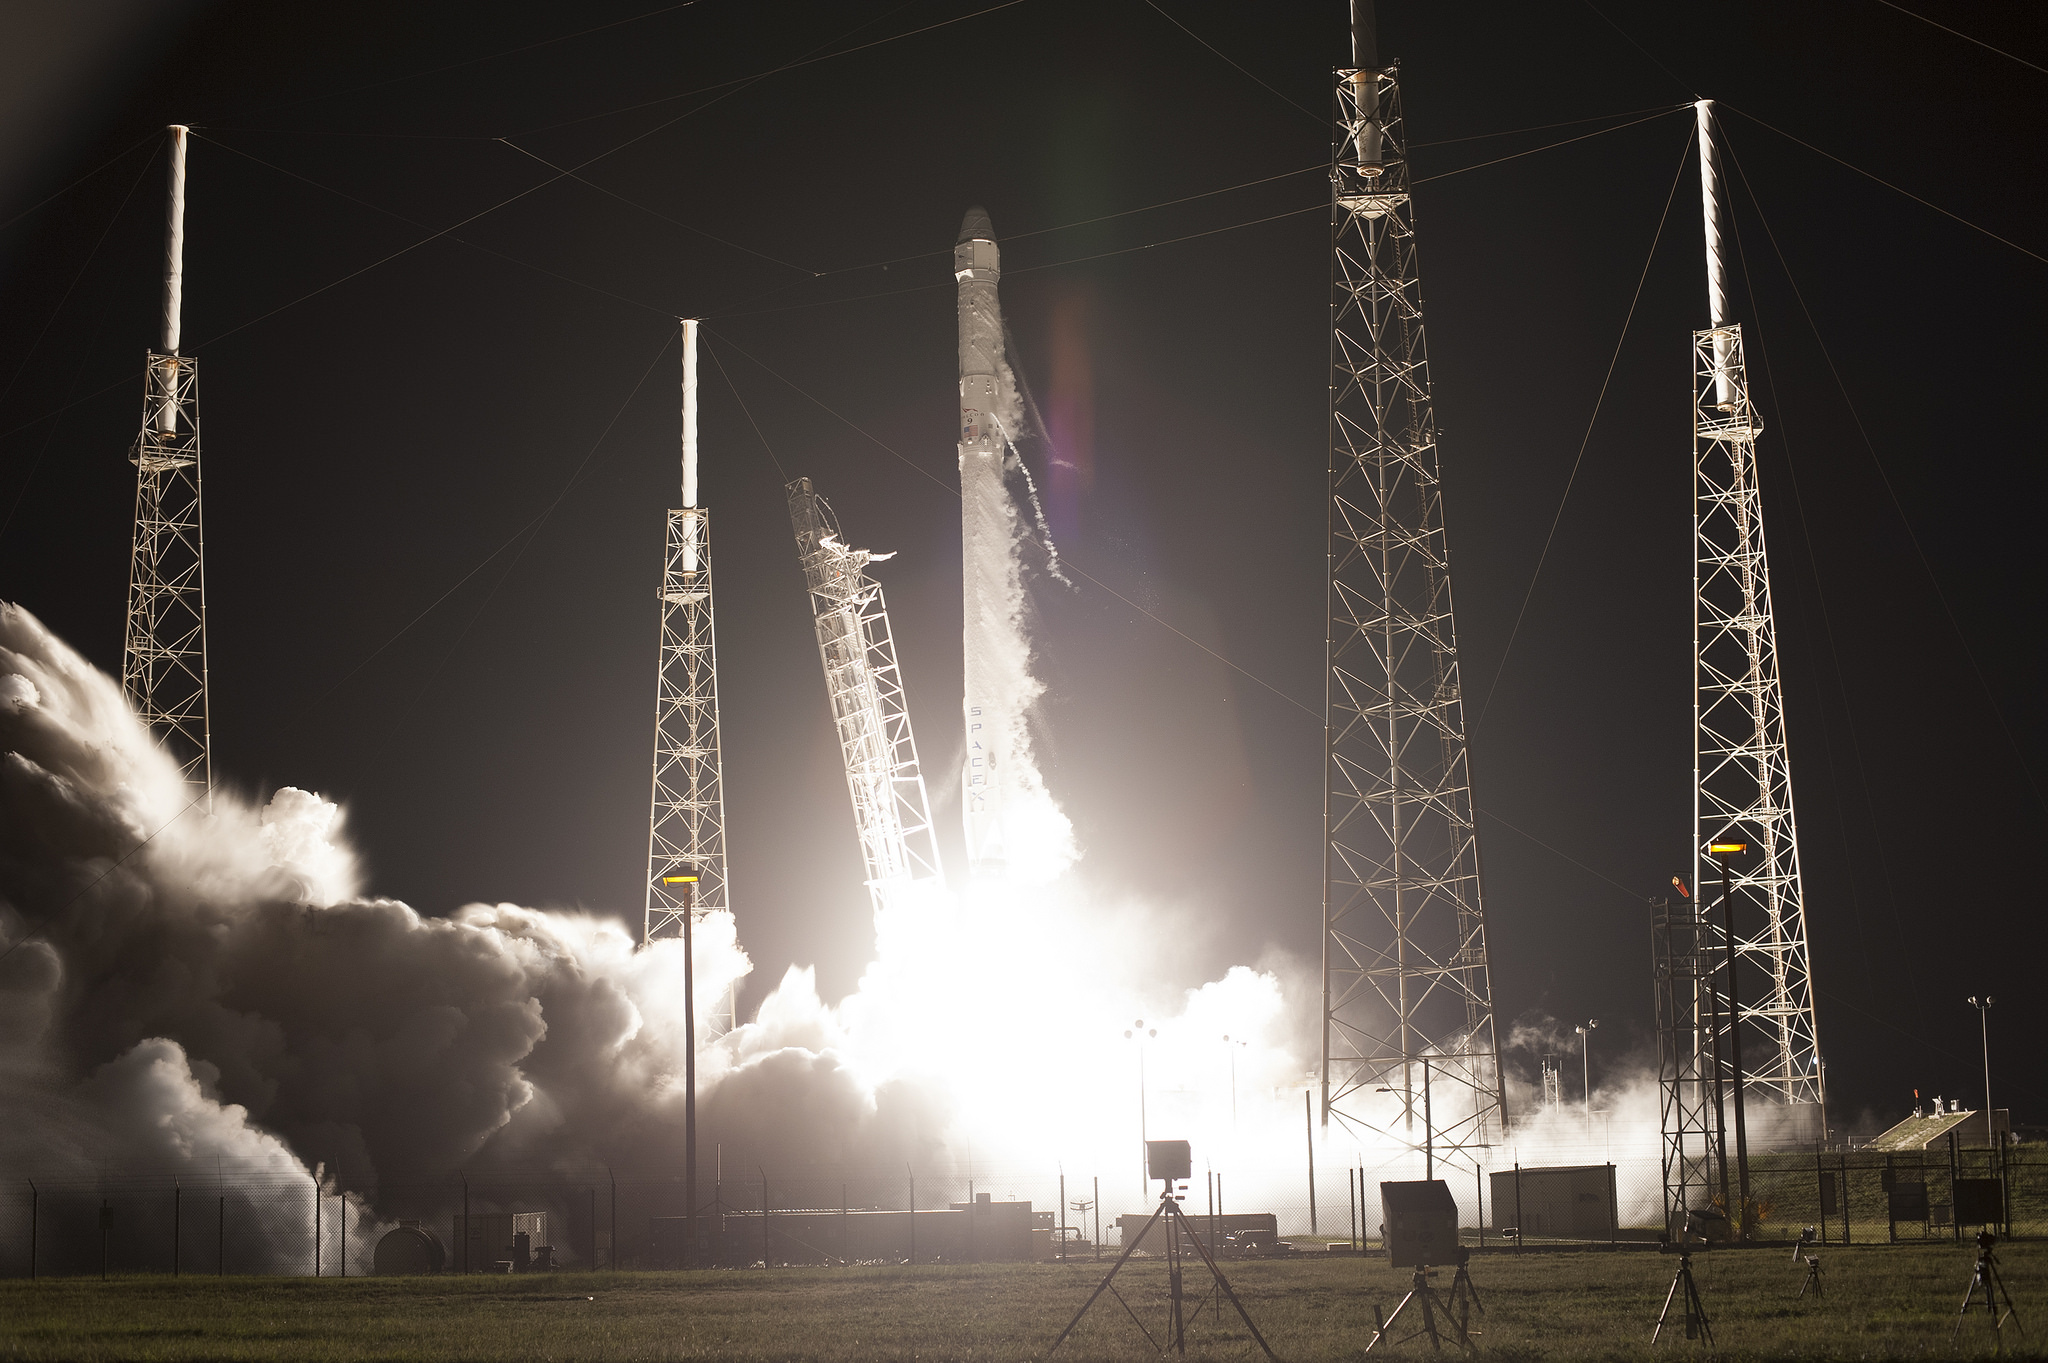 Launch of SpaceX CRS-9